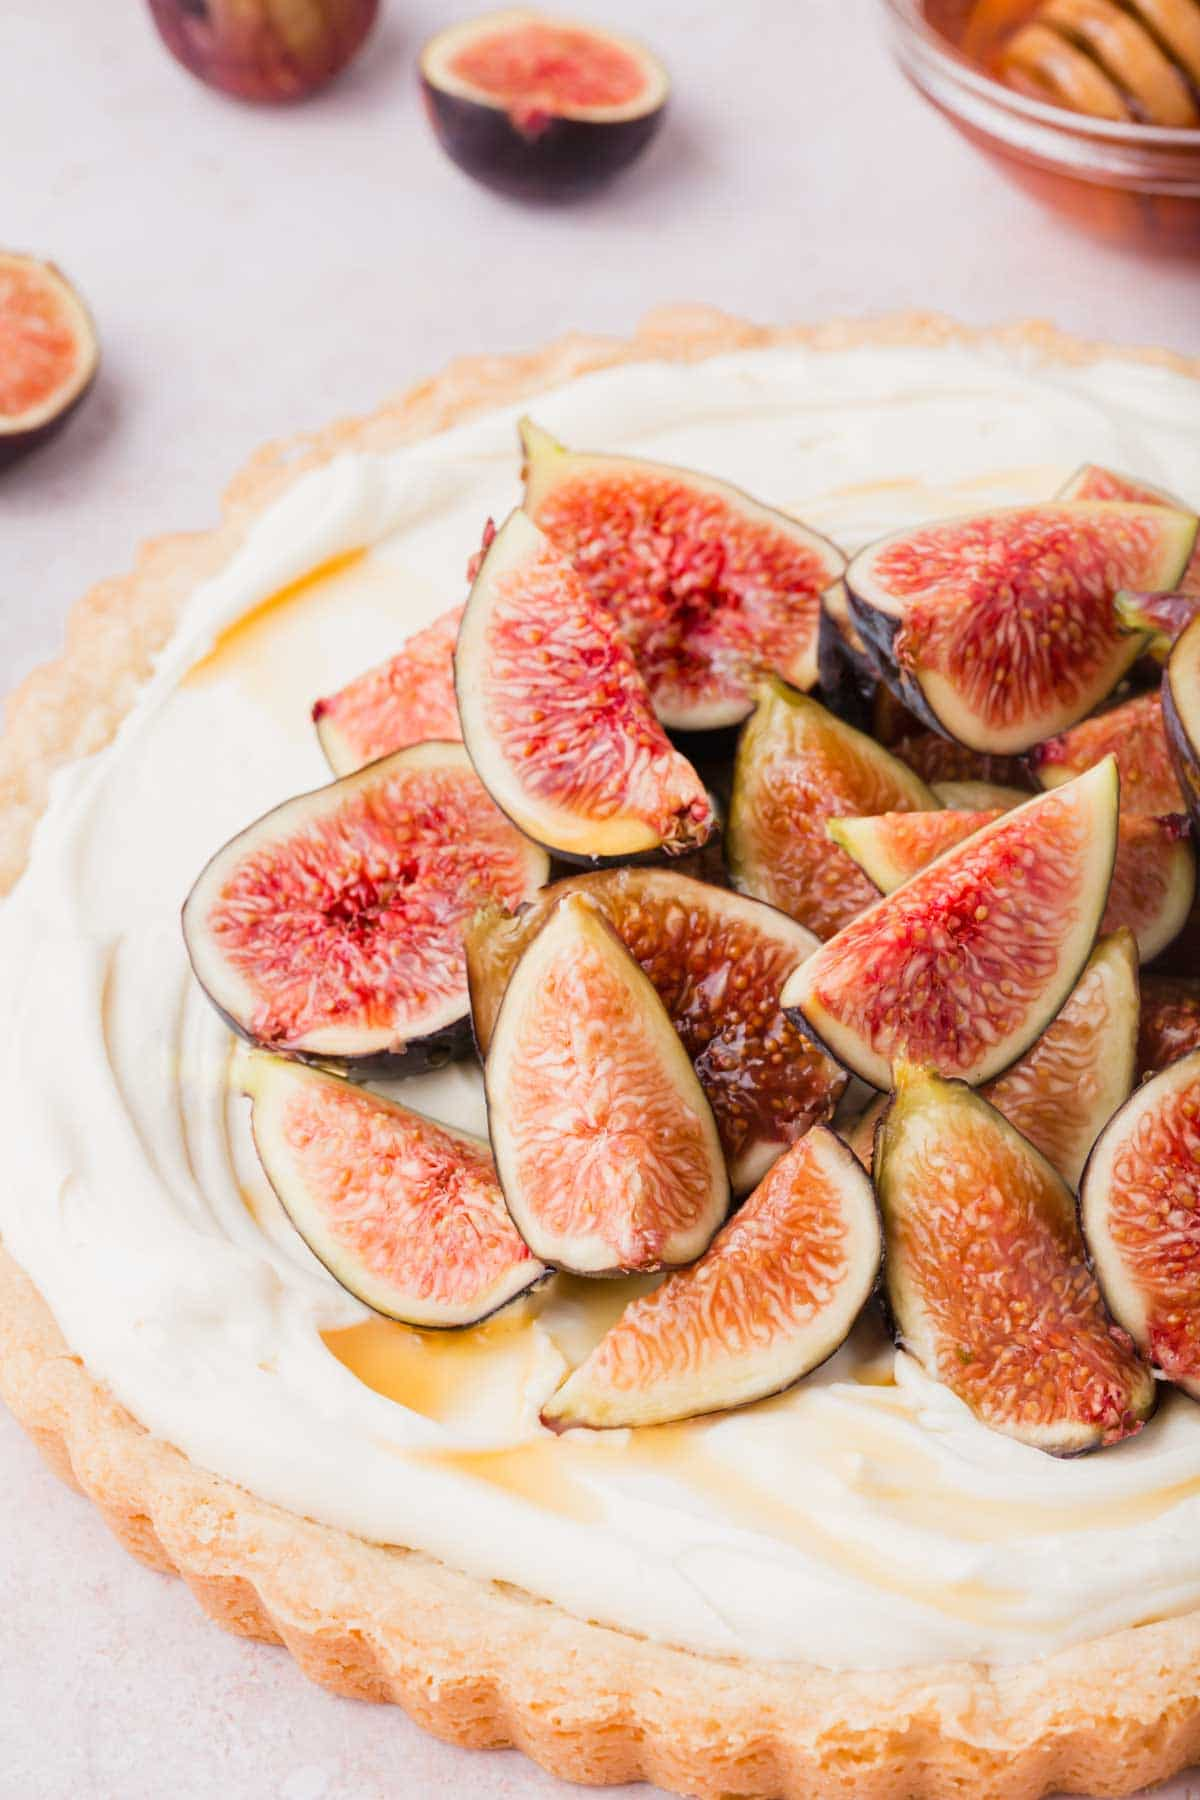 Full tart with buttery shortbread crust, mascarpone filling, topped with fresh figs.